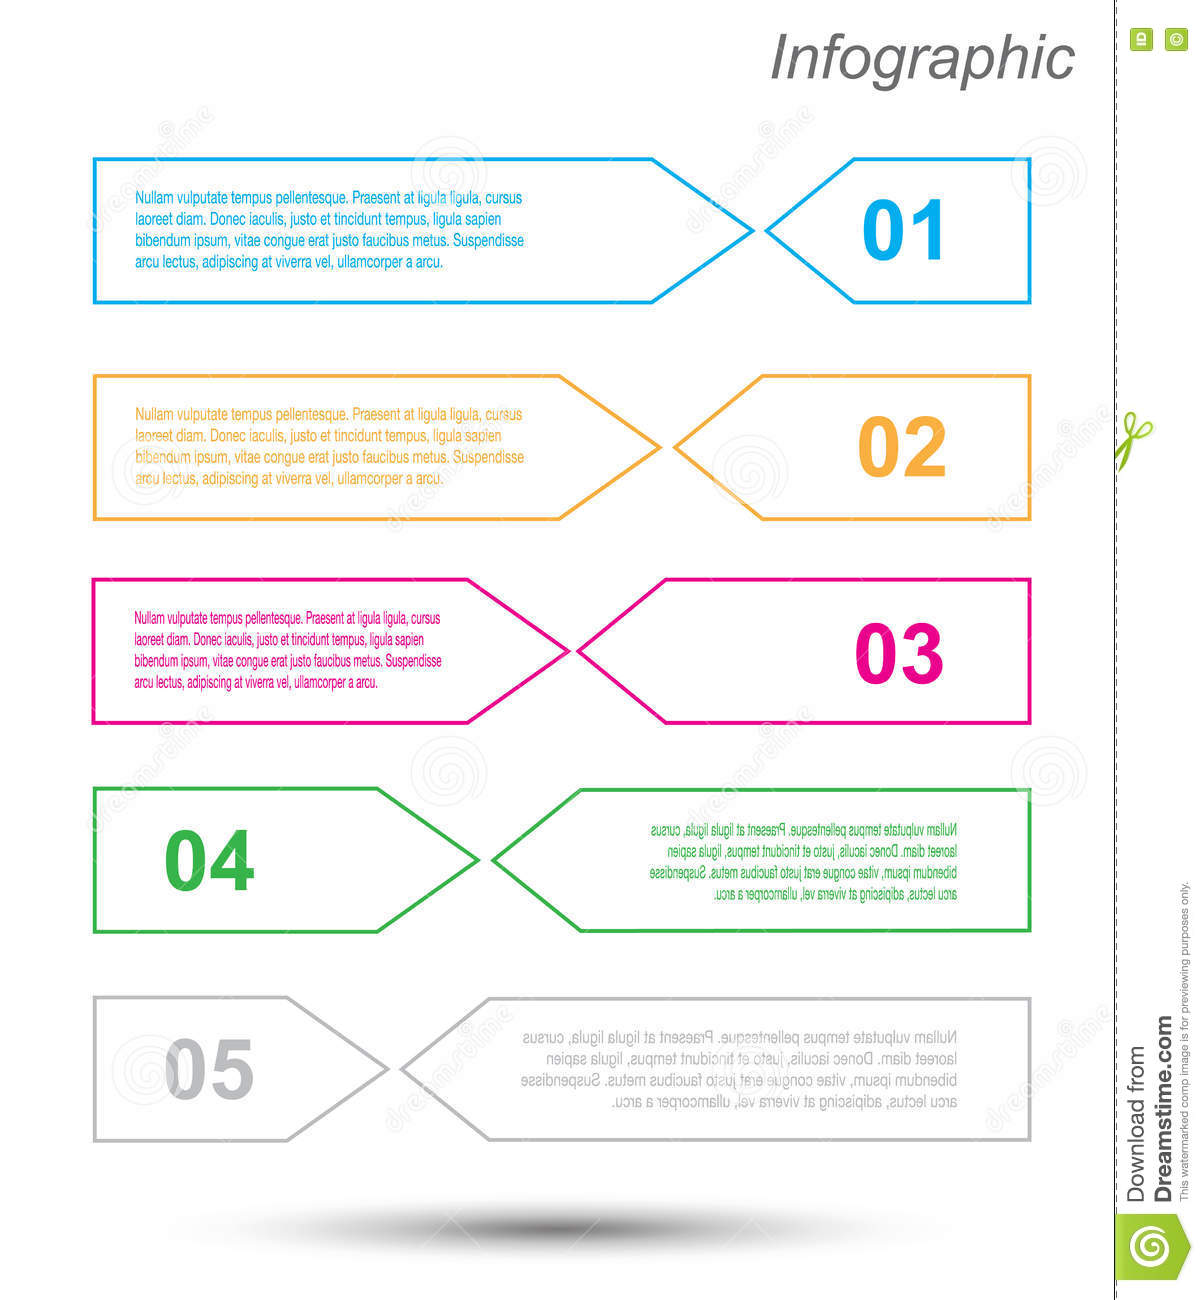 graphic design essay The history of graphic design essay 1085 words | 5 pages history of graphic design thesis graphic design is an art that has undergone a lot of revolution in terms of.